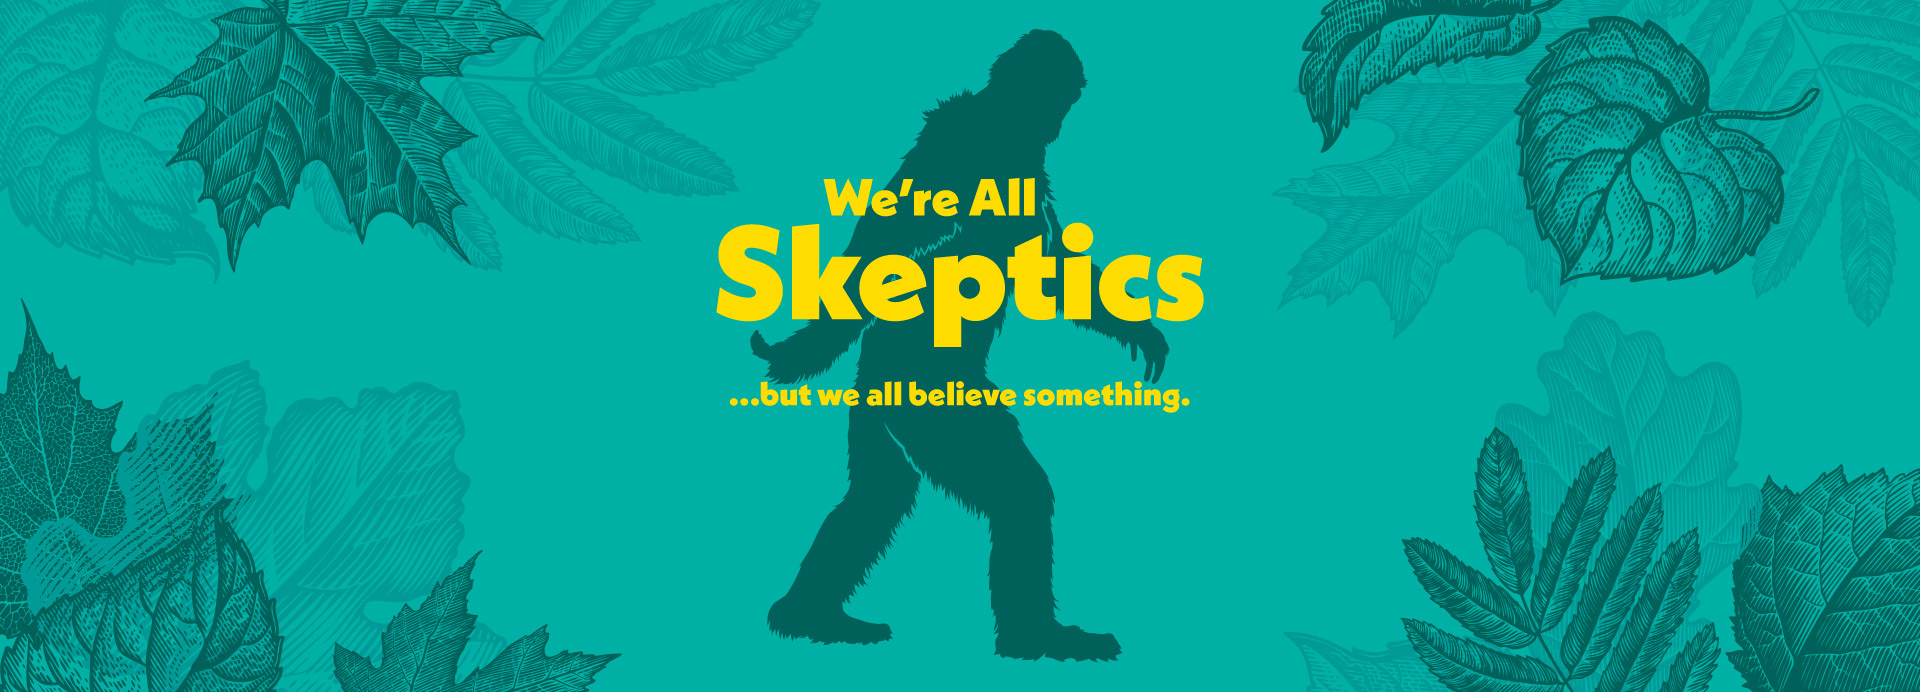 We're All Skeptics